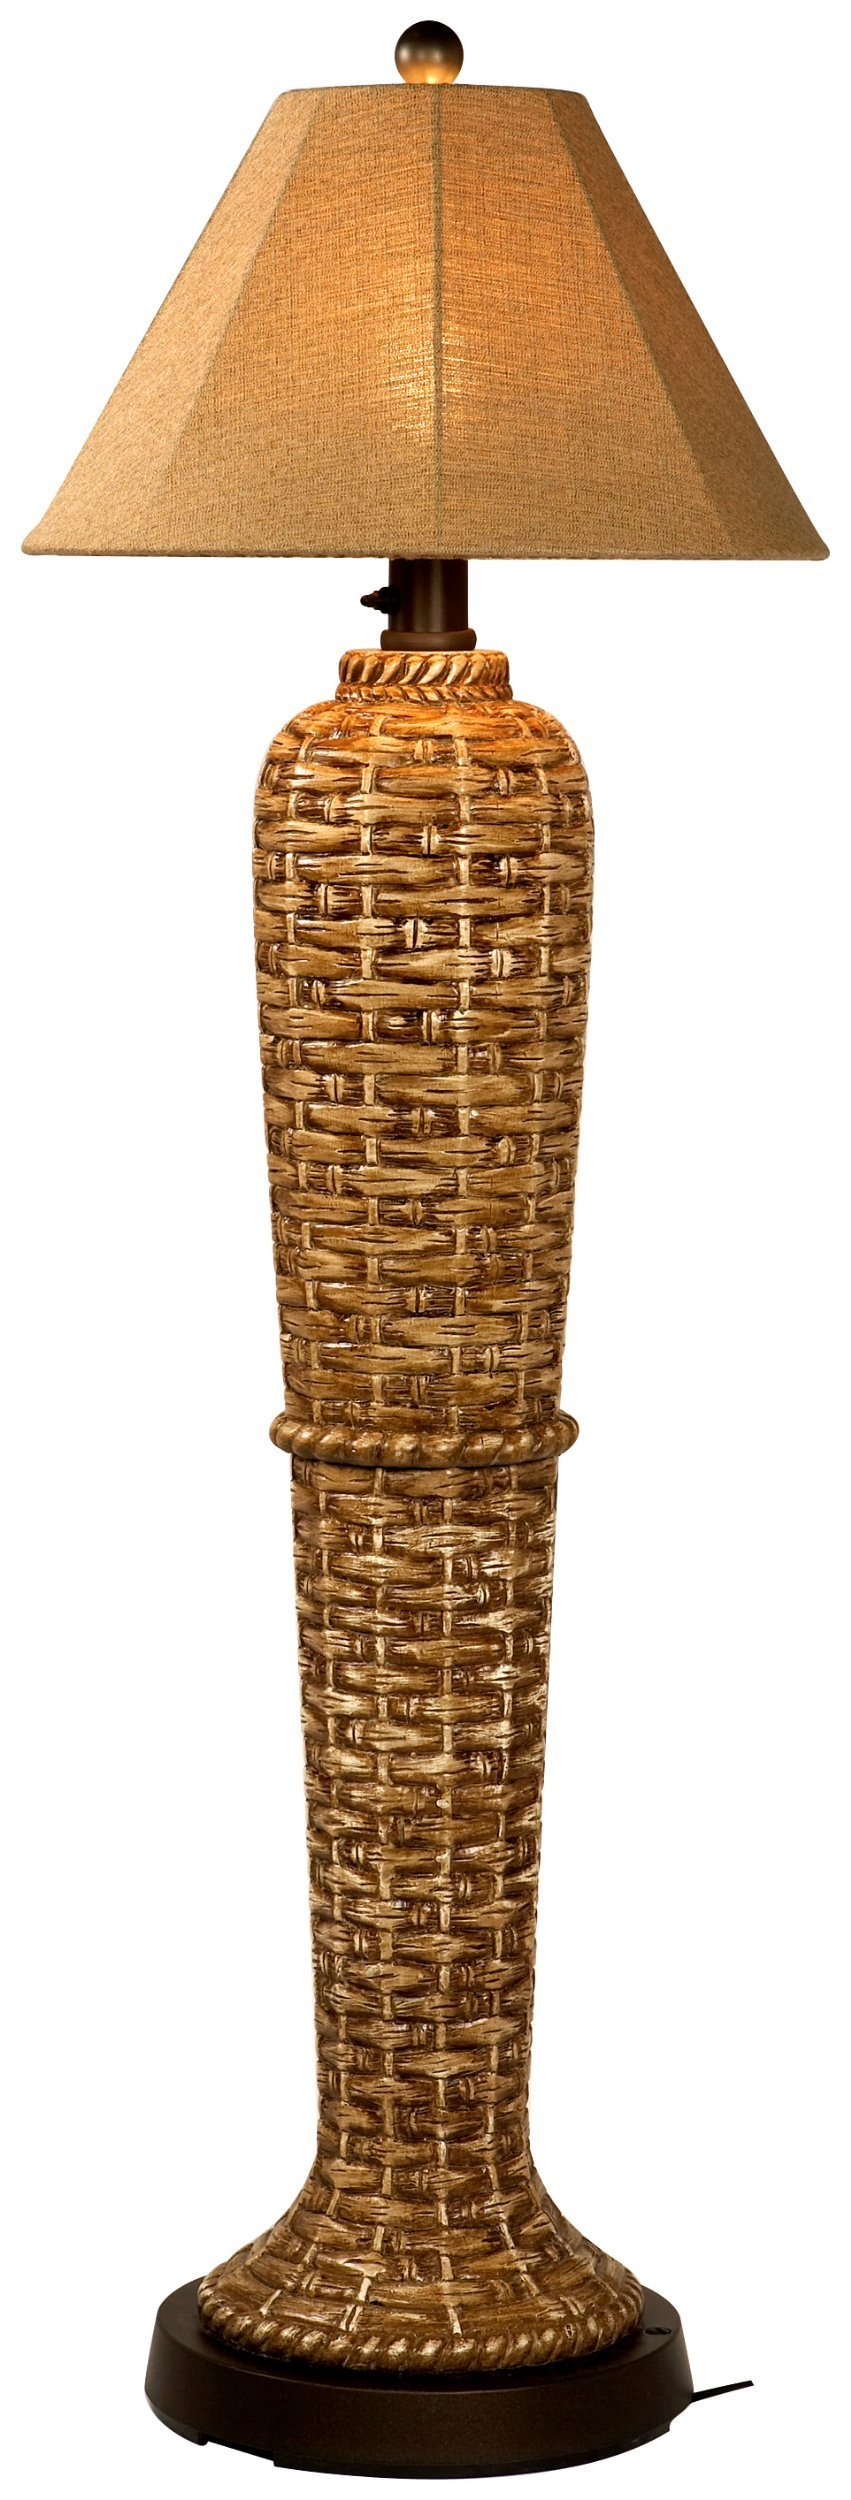 South Pacific 45943  60-inch Floor Lamp by Patio Living Concepts